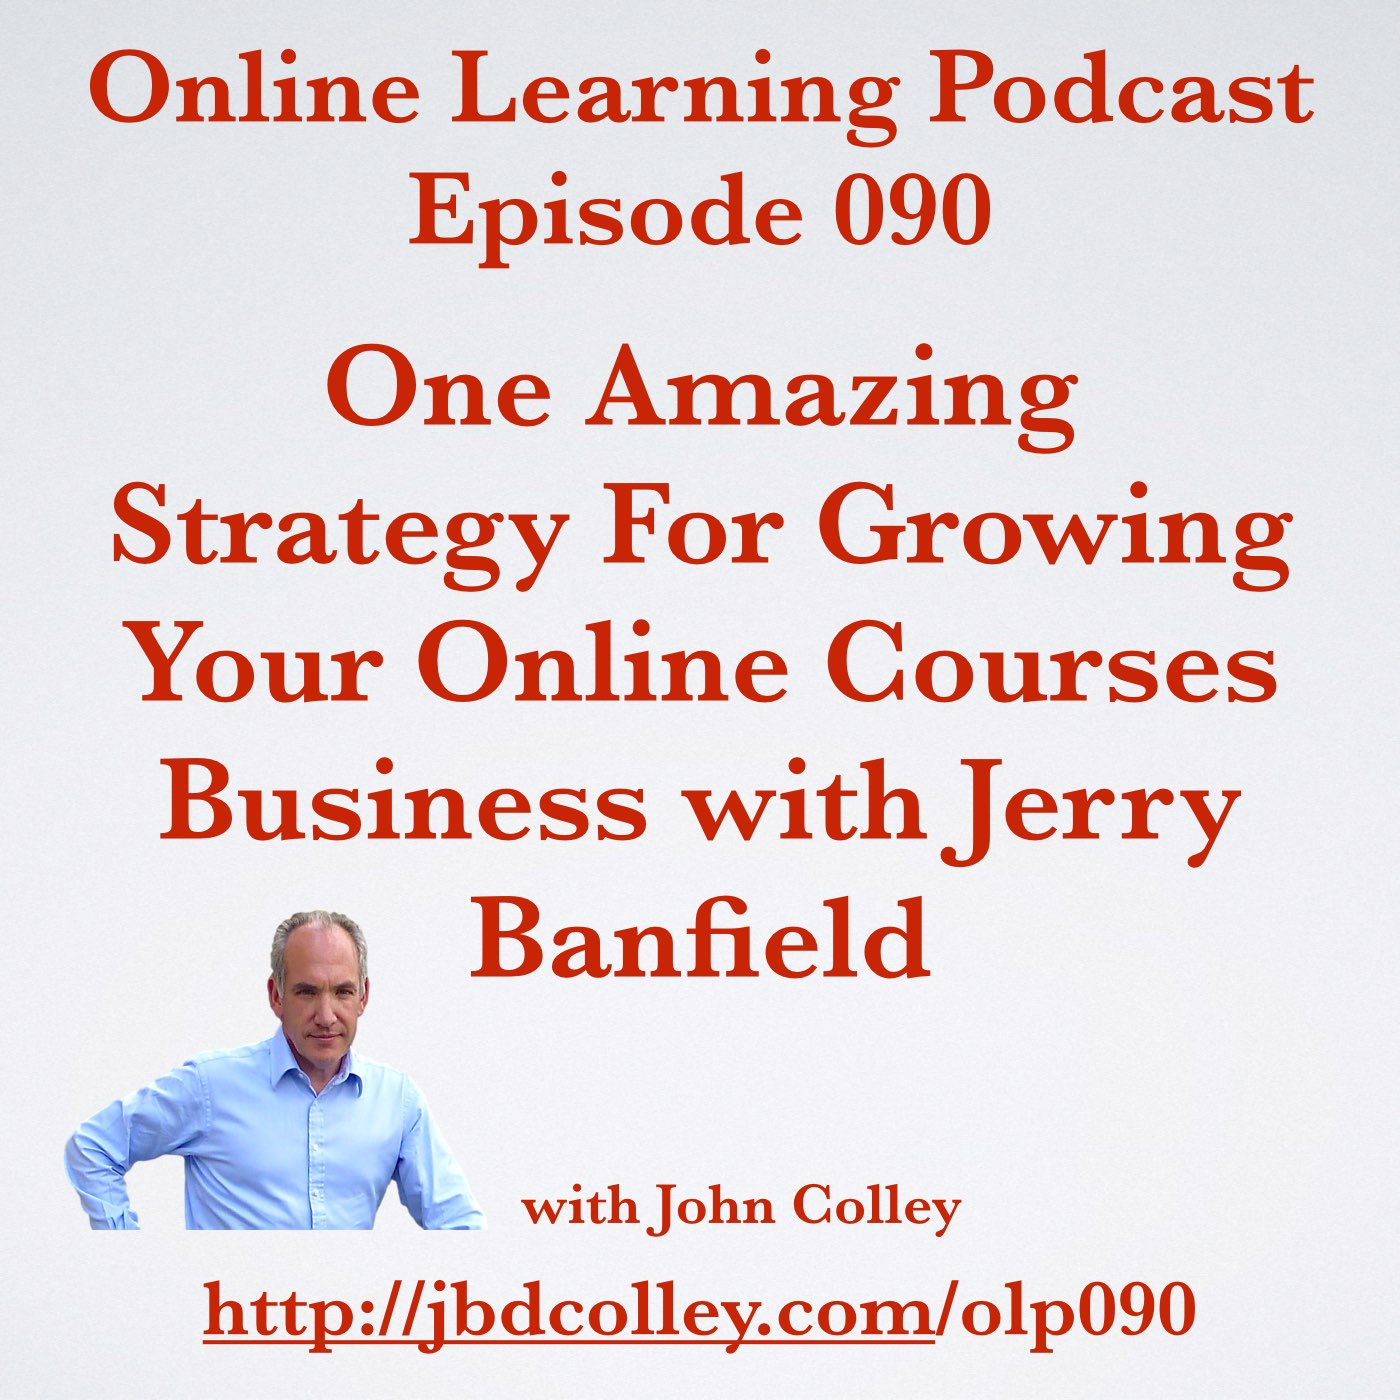 OLP090 One Amazing Strategy For Growing Your Online Courses Business with Jerry Banfield